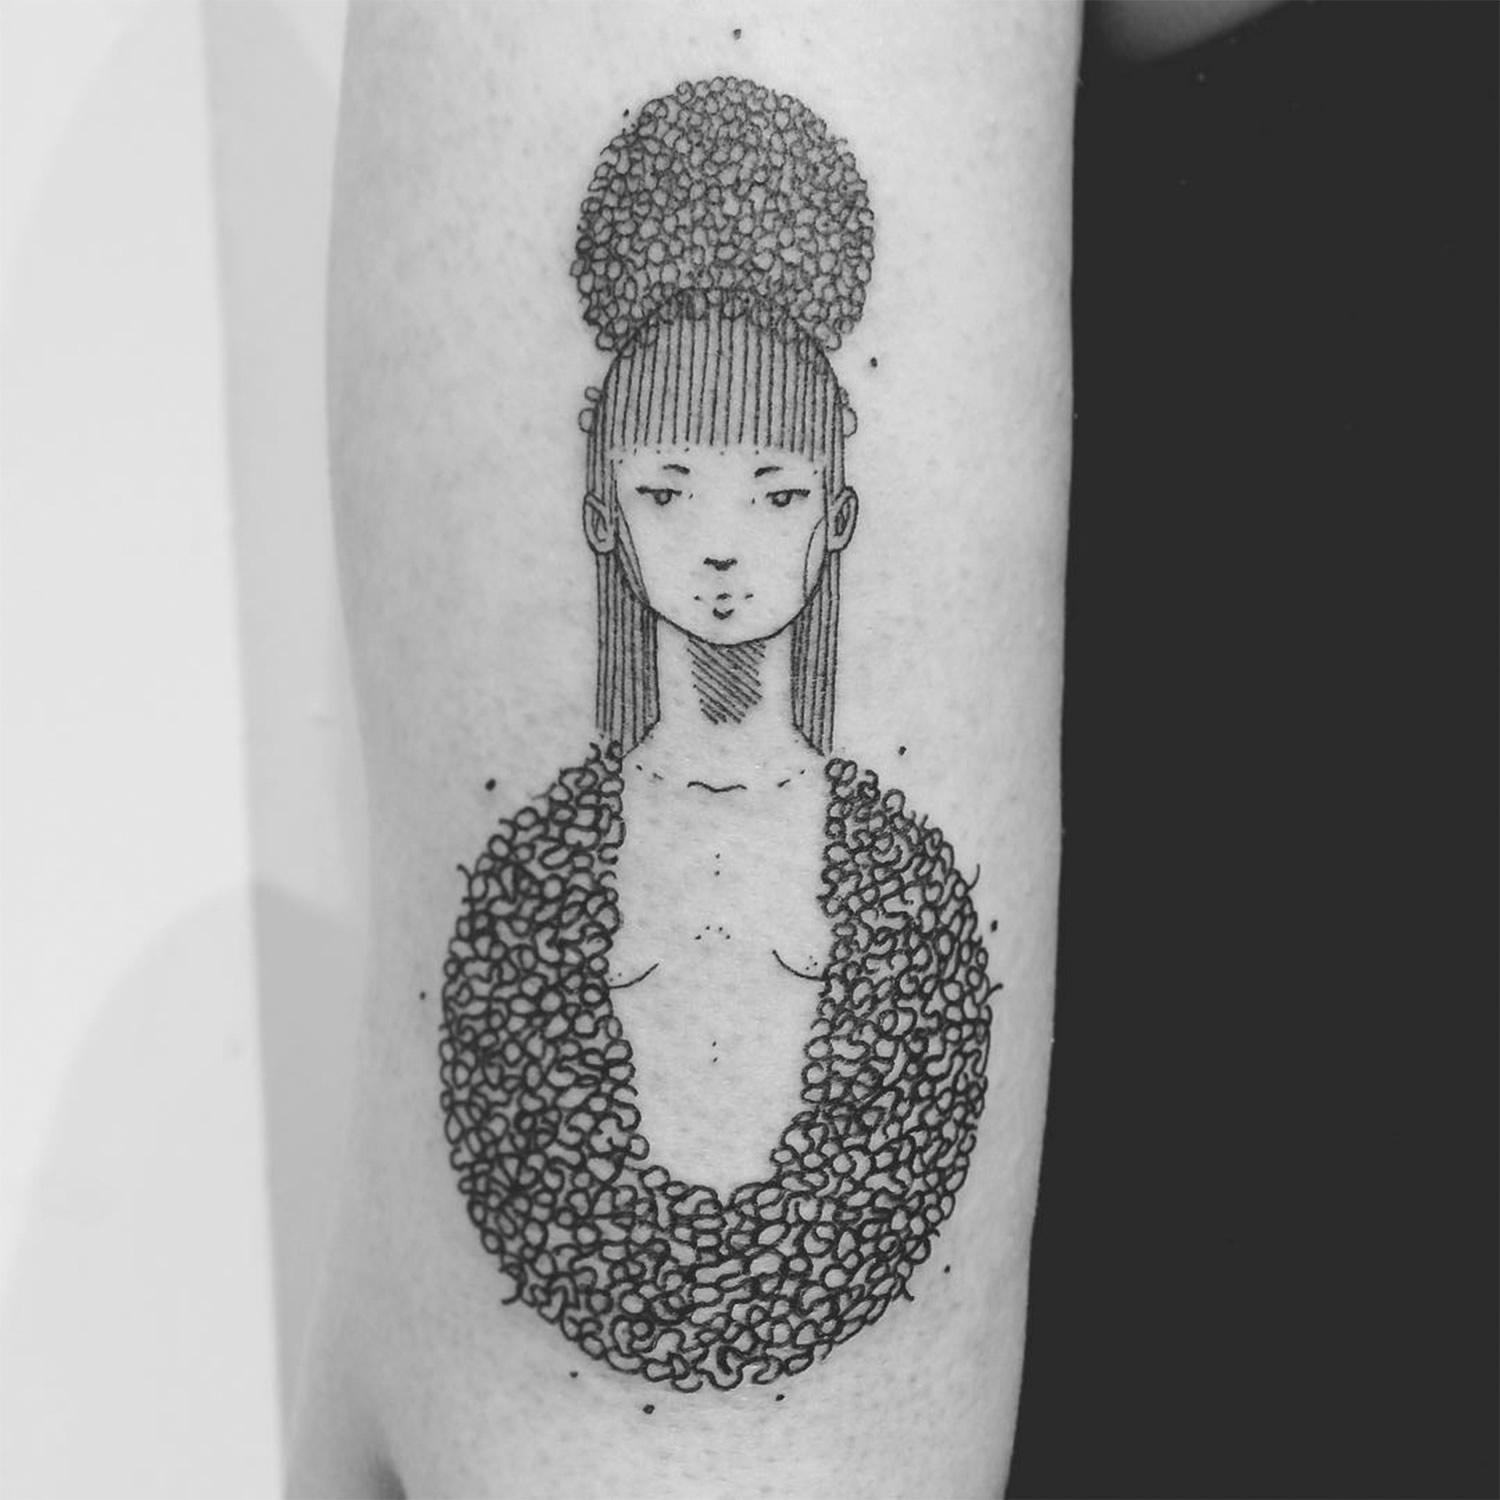 geisha style, inework tattoo by guga scharf